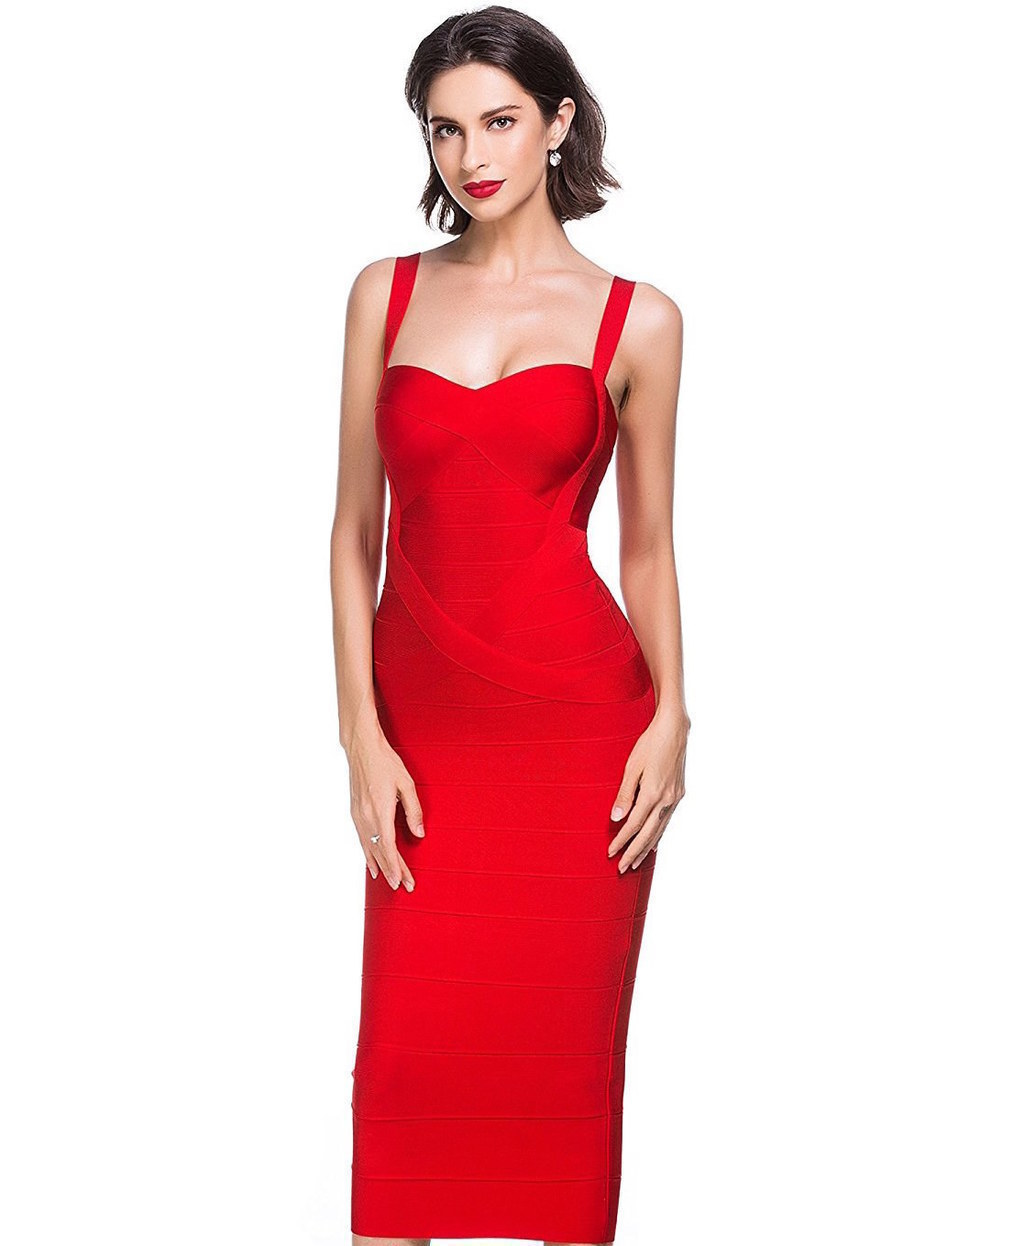 Red cocktail dress size 0 average